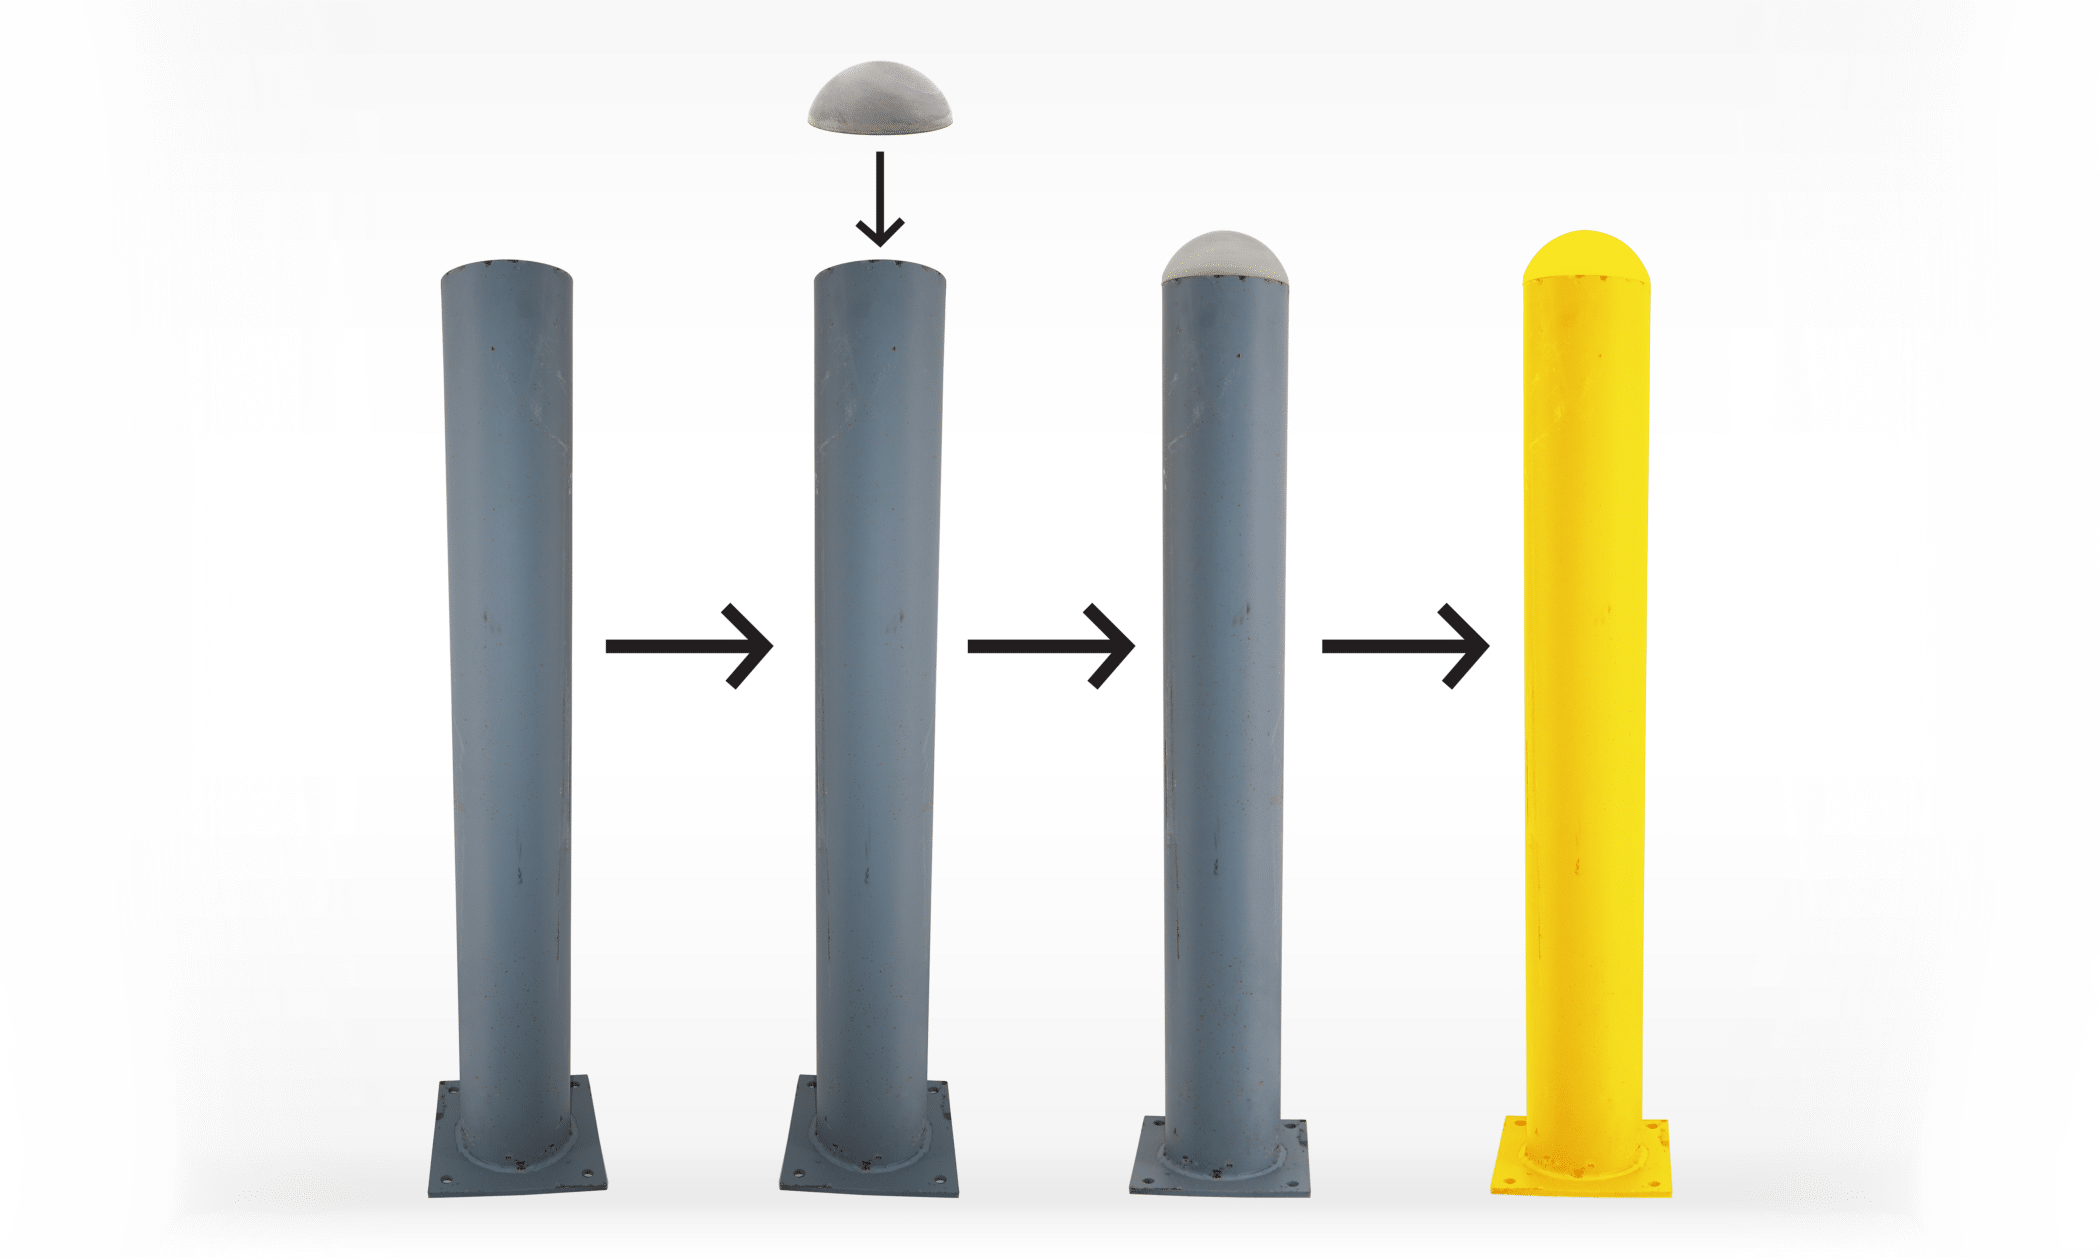 The Bollard Shop, TopGard caps, Bollards, Bollard Caps, Bollard Covers, Steel Bollards, Bollards,